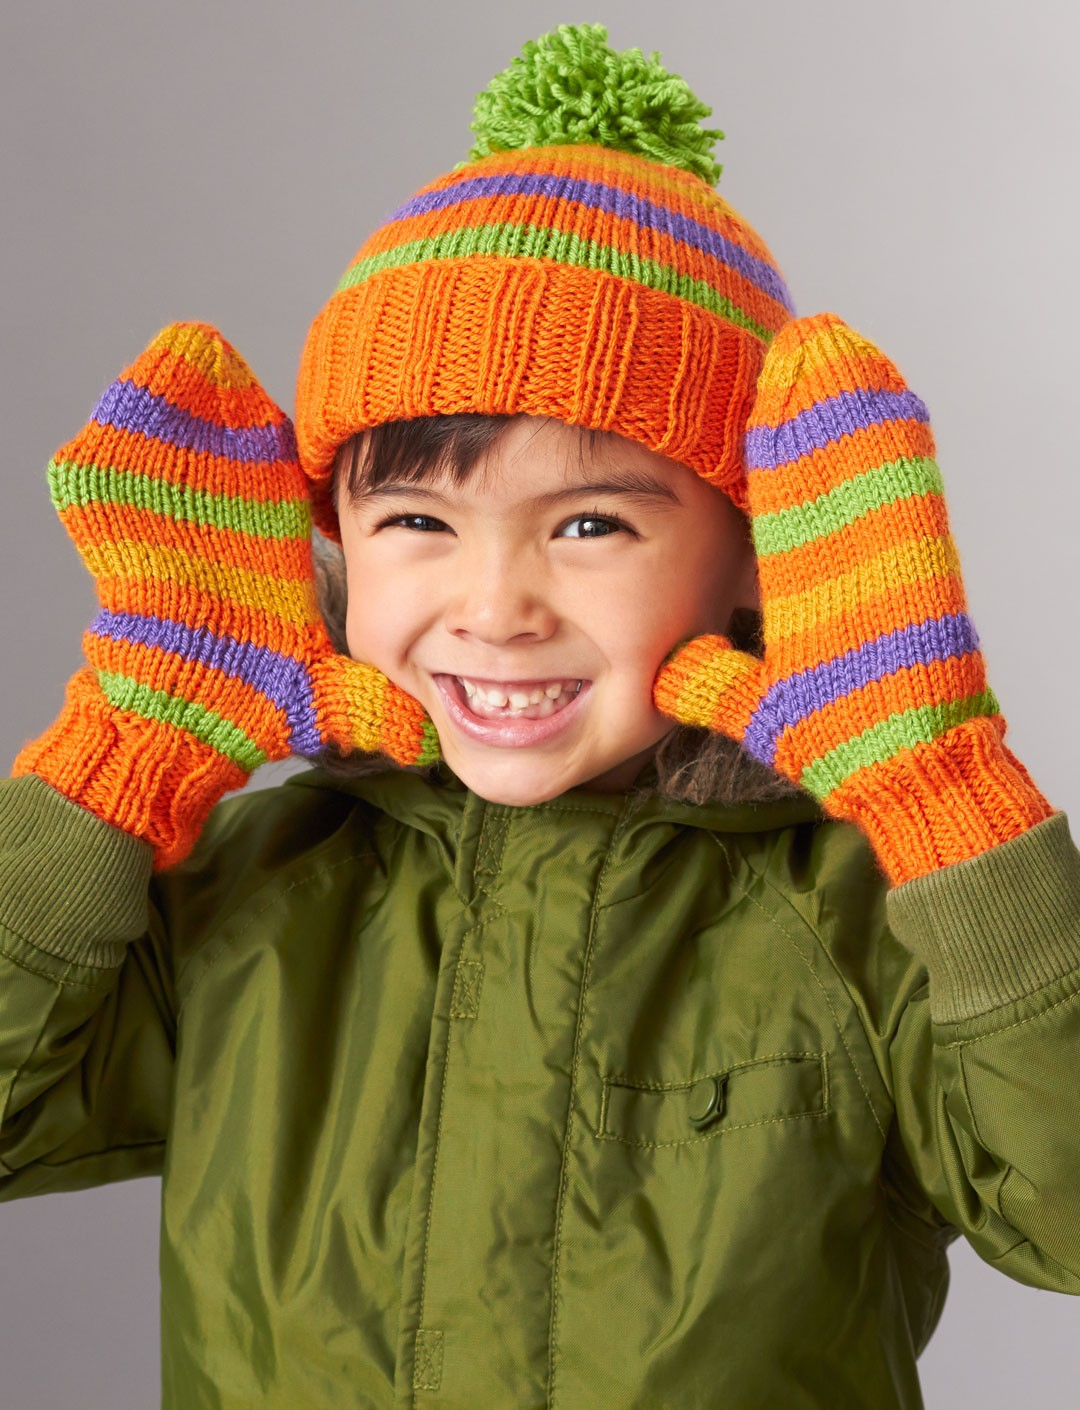 Free Knitting Patterns For Hats In The Round : Patons Striped Basic Hat and Mittens 4 Needles, Knit Pattern Yarnspirations